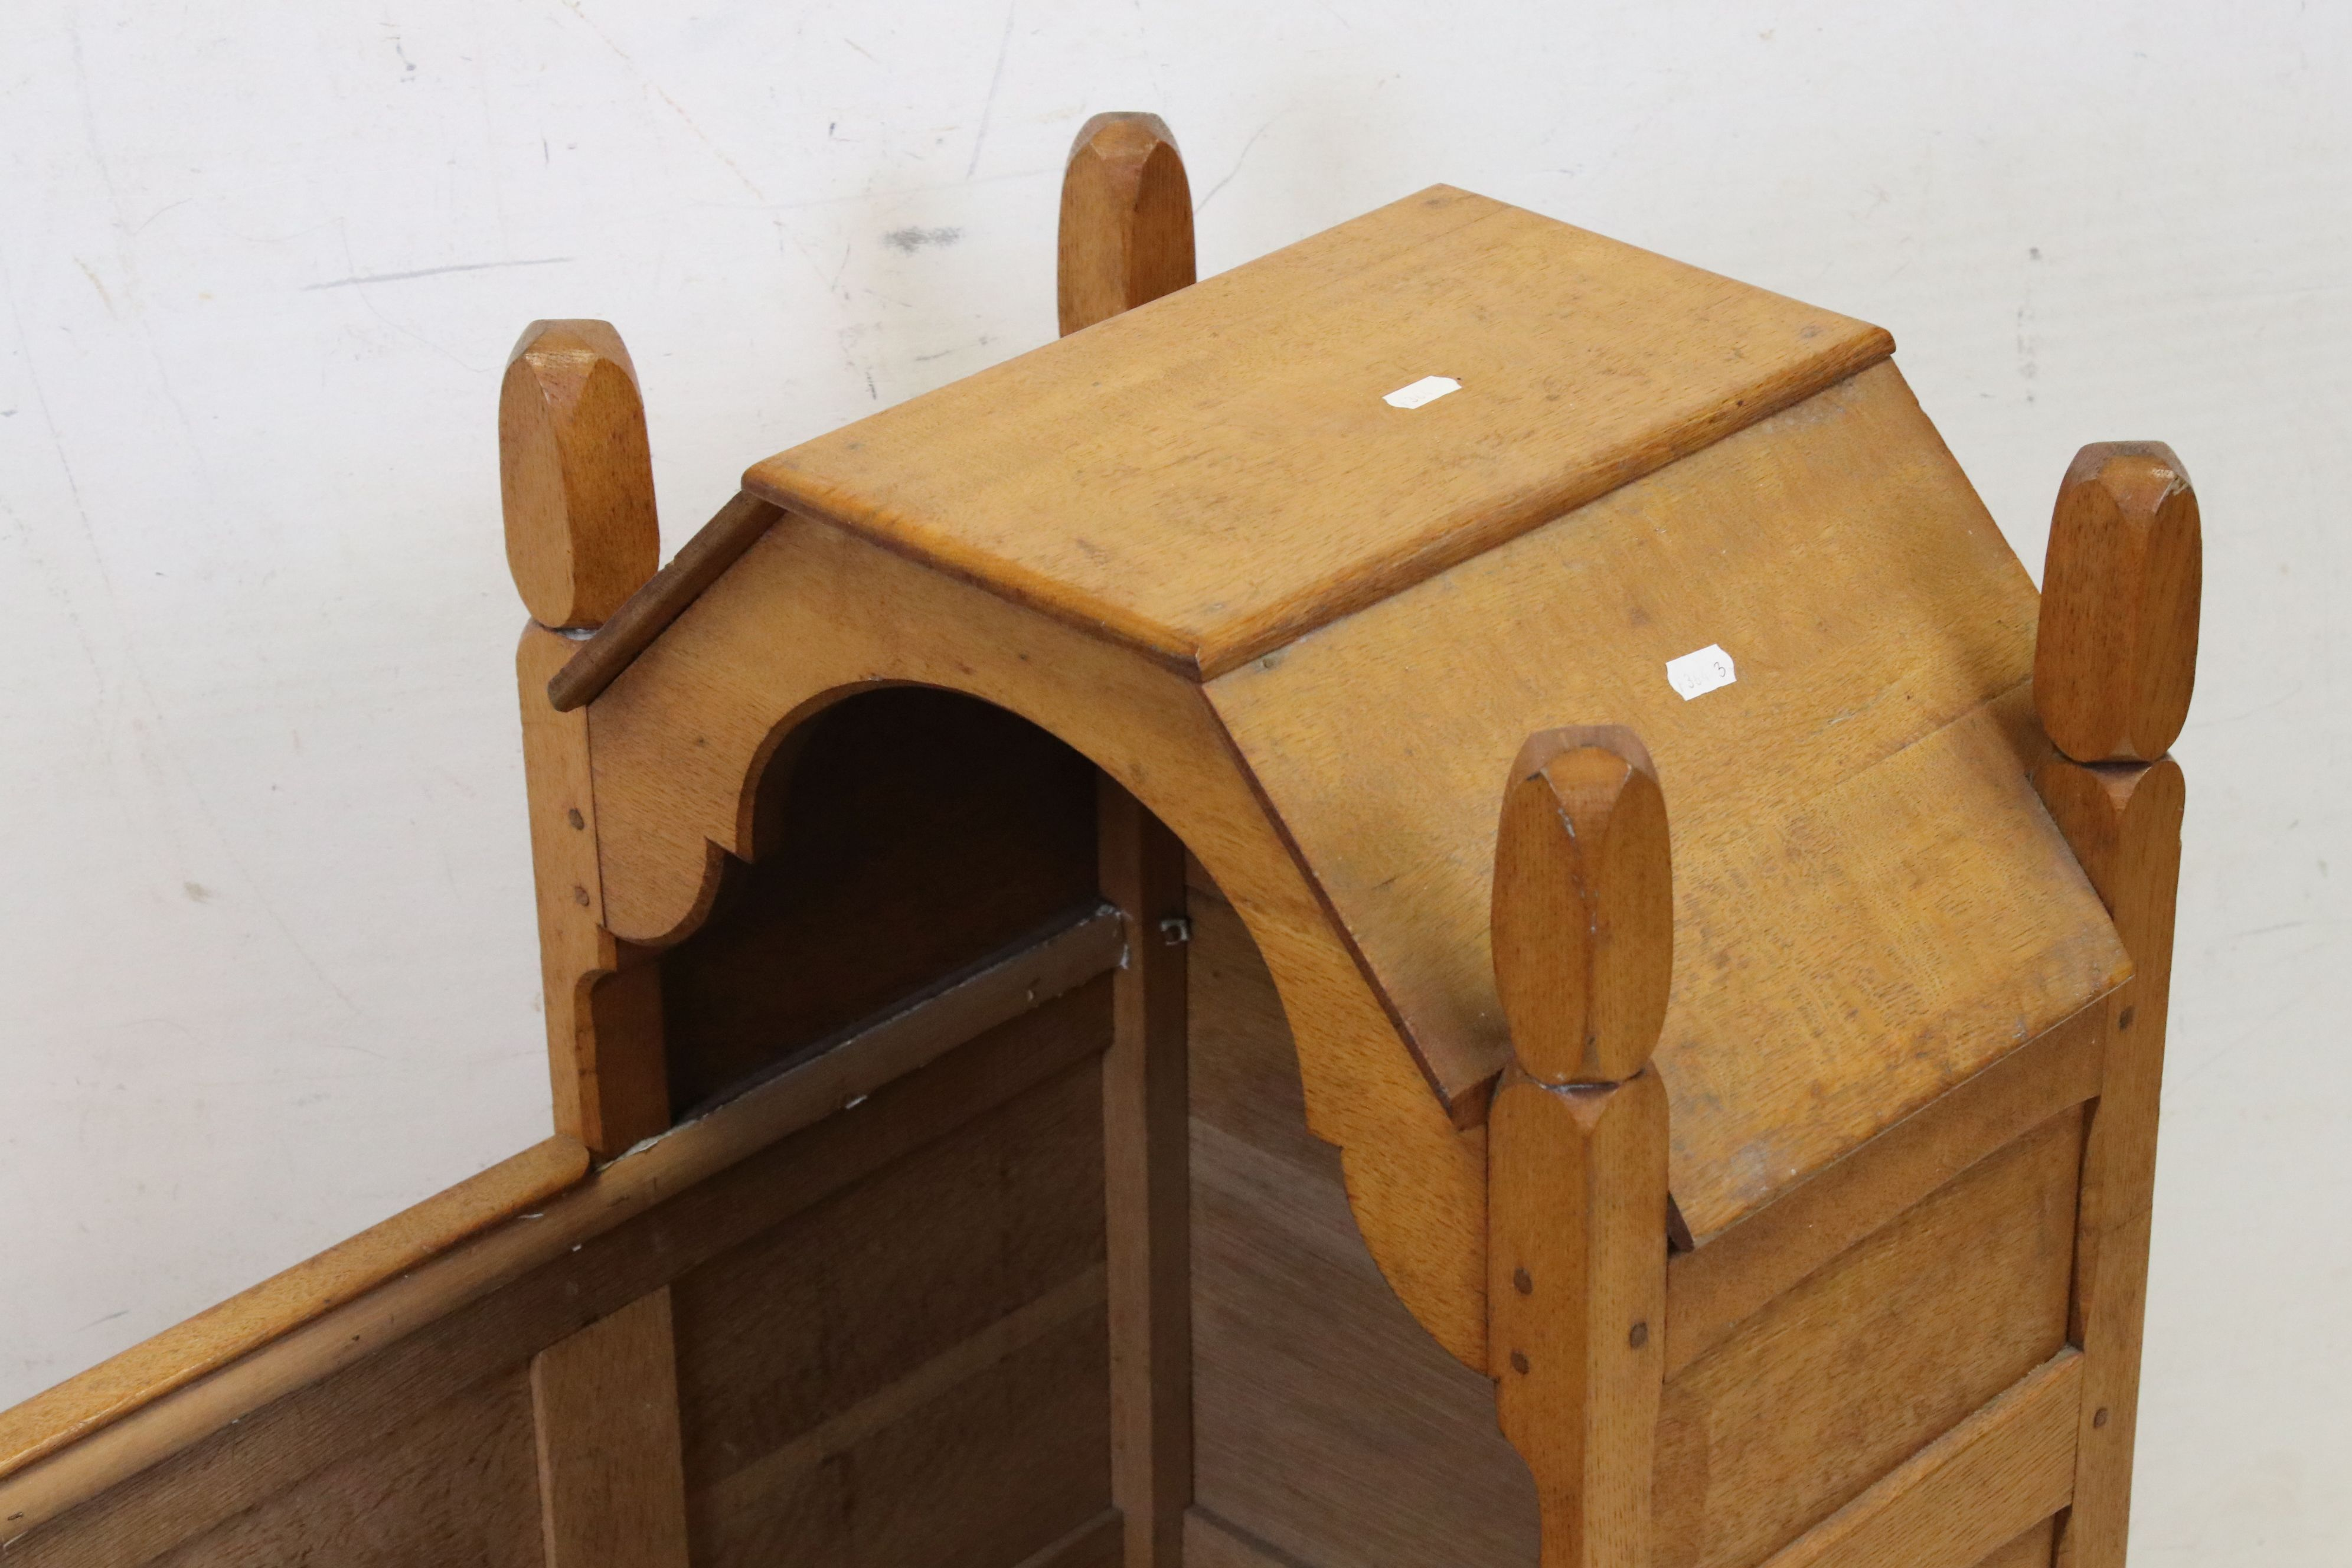 Oak Rocking Crib of panelled construction in the Cotswold School manner, 81cms long - Image 2 of 4